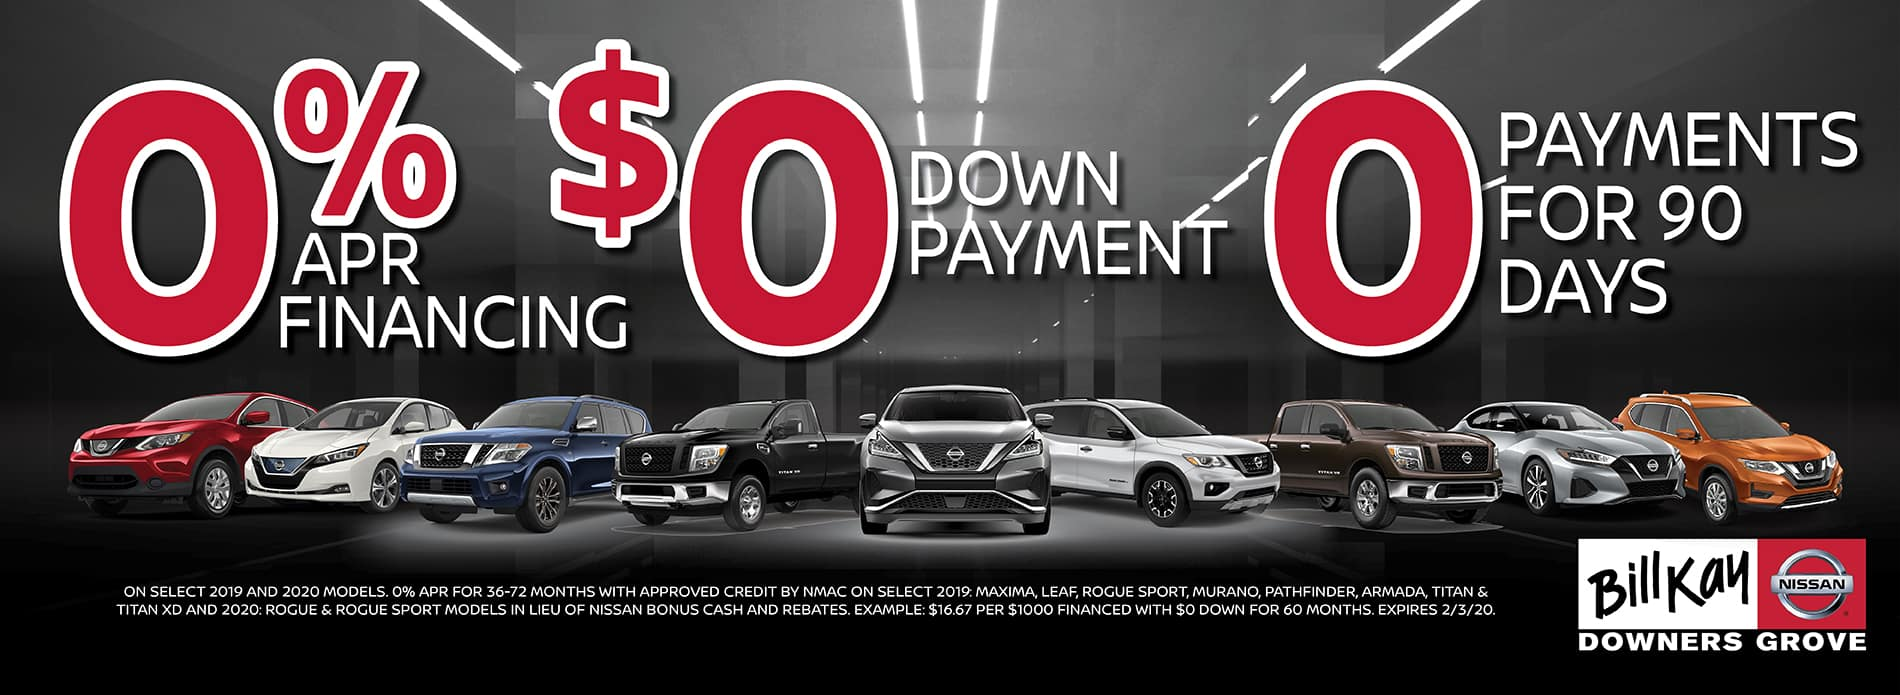 Nissan Make A Payment >> Bill Kay Nissan New And Used Nissan Dealer In Downers